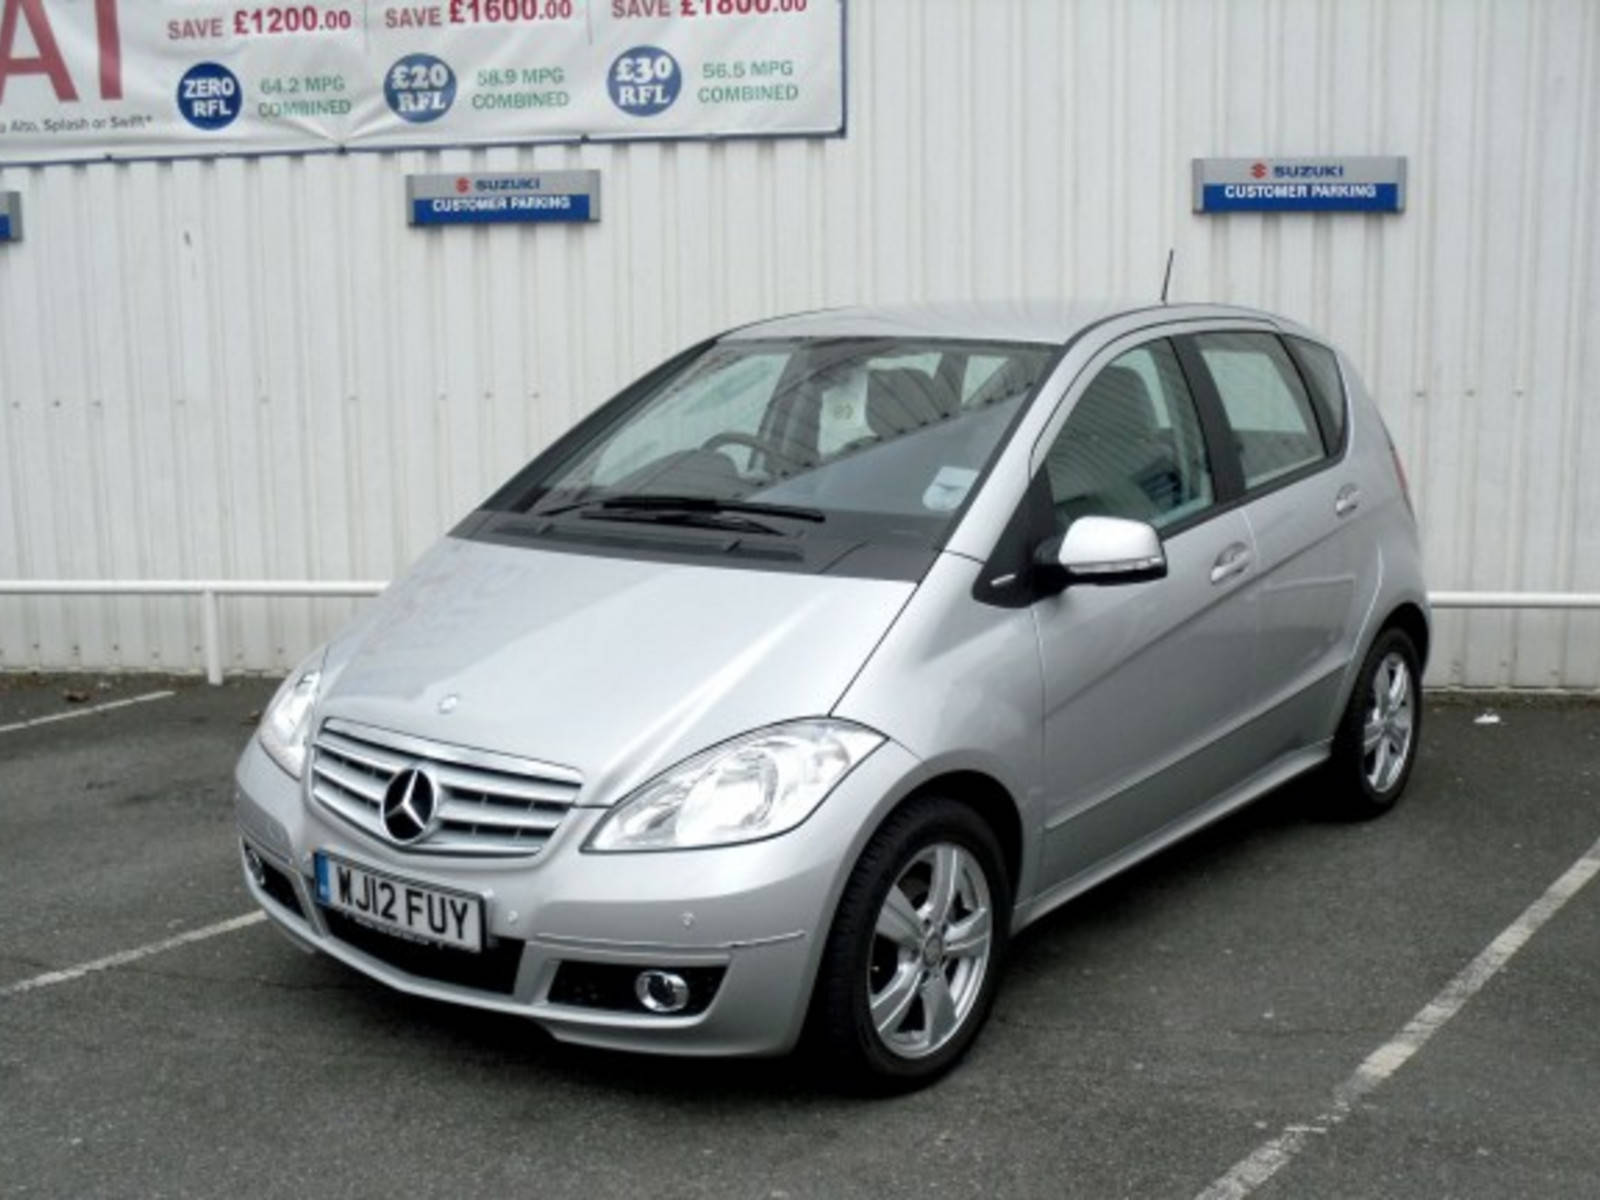 2012 Mercedes A-Class A160 Avantgarde SE Automatic 5 Door